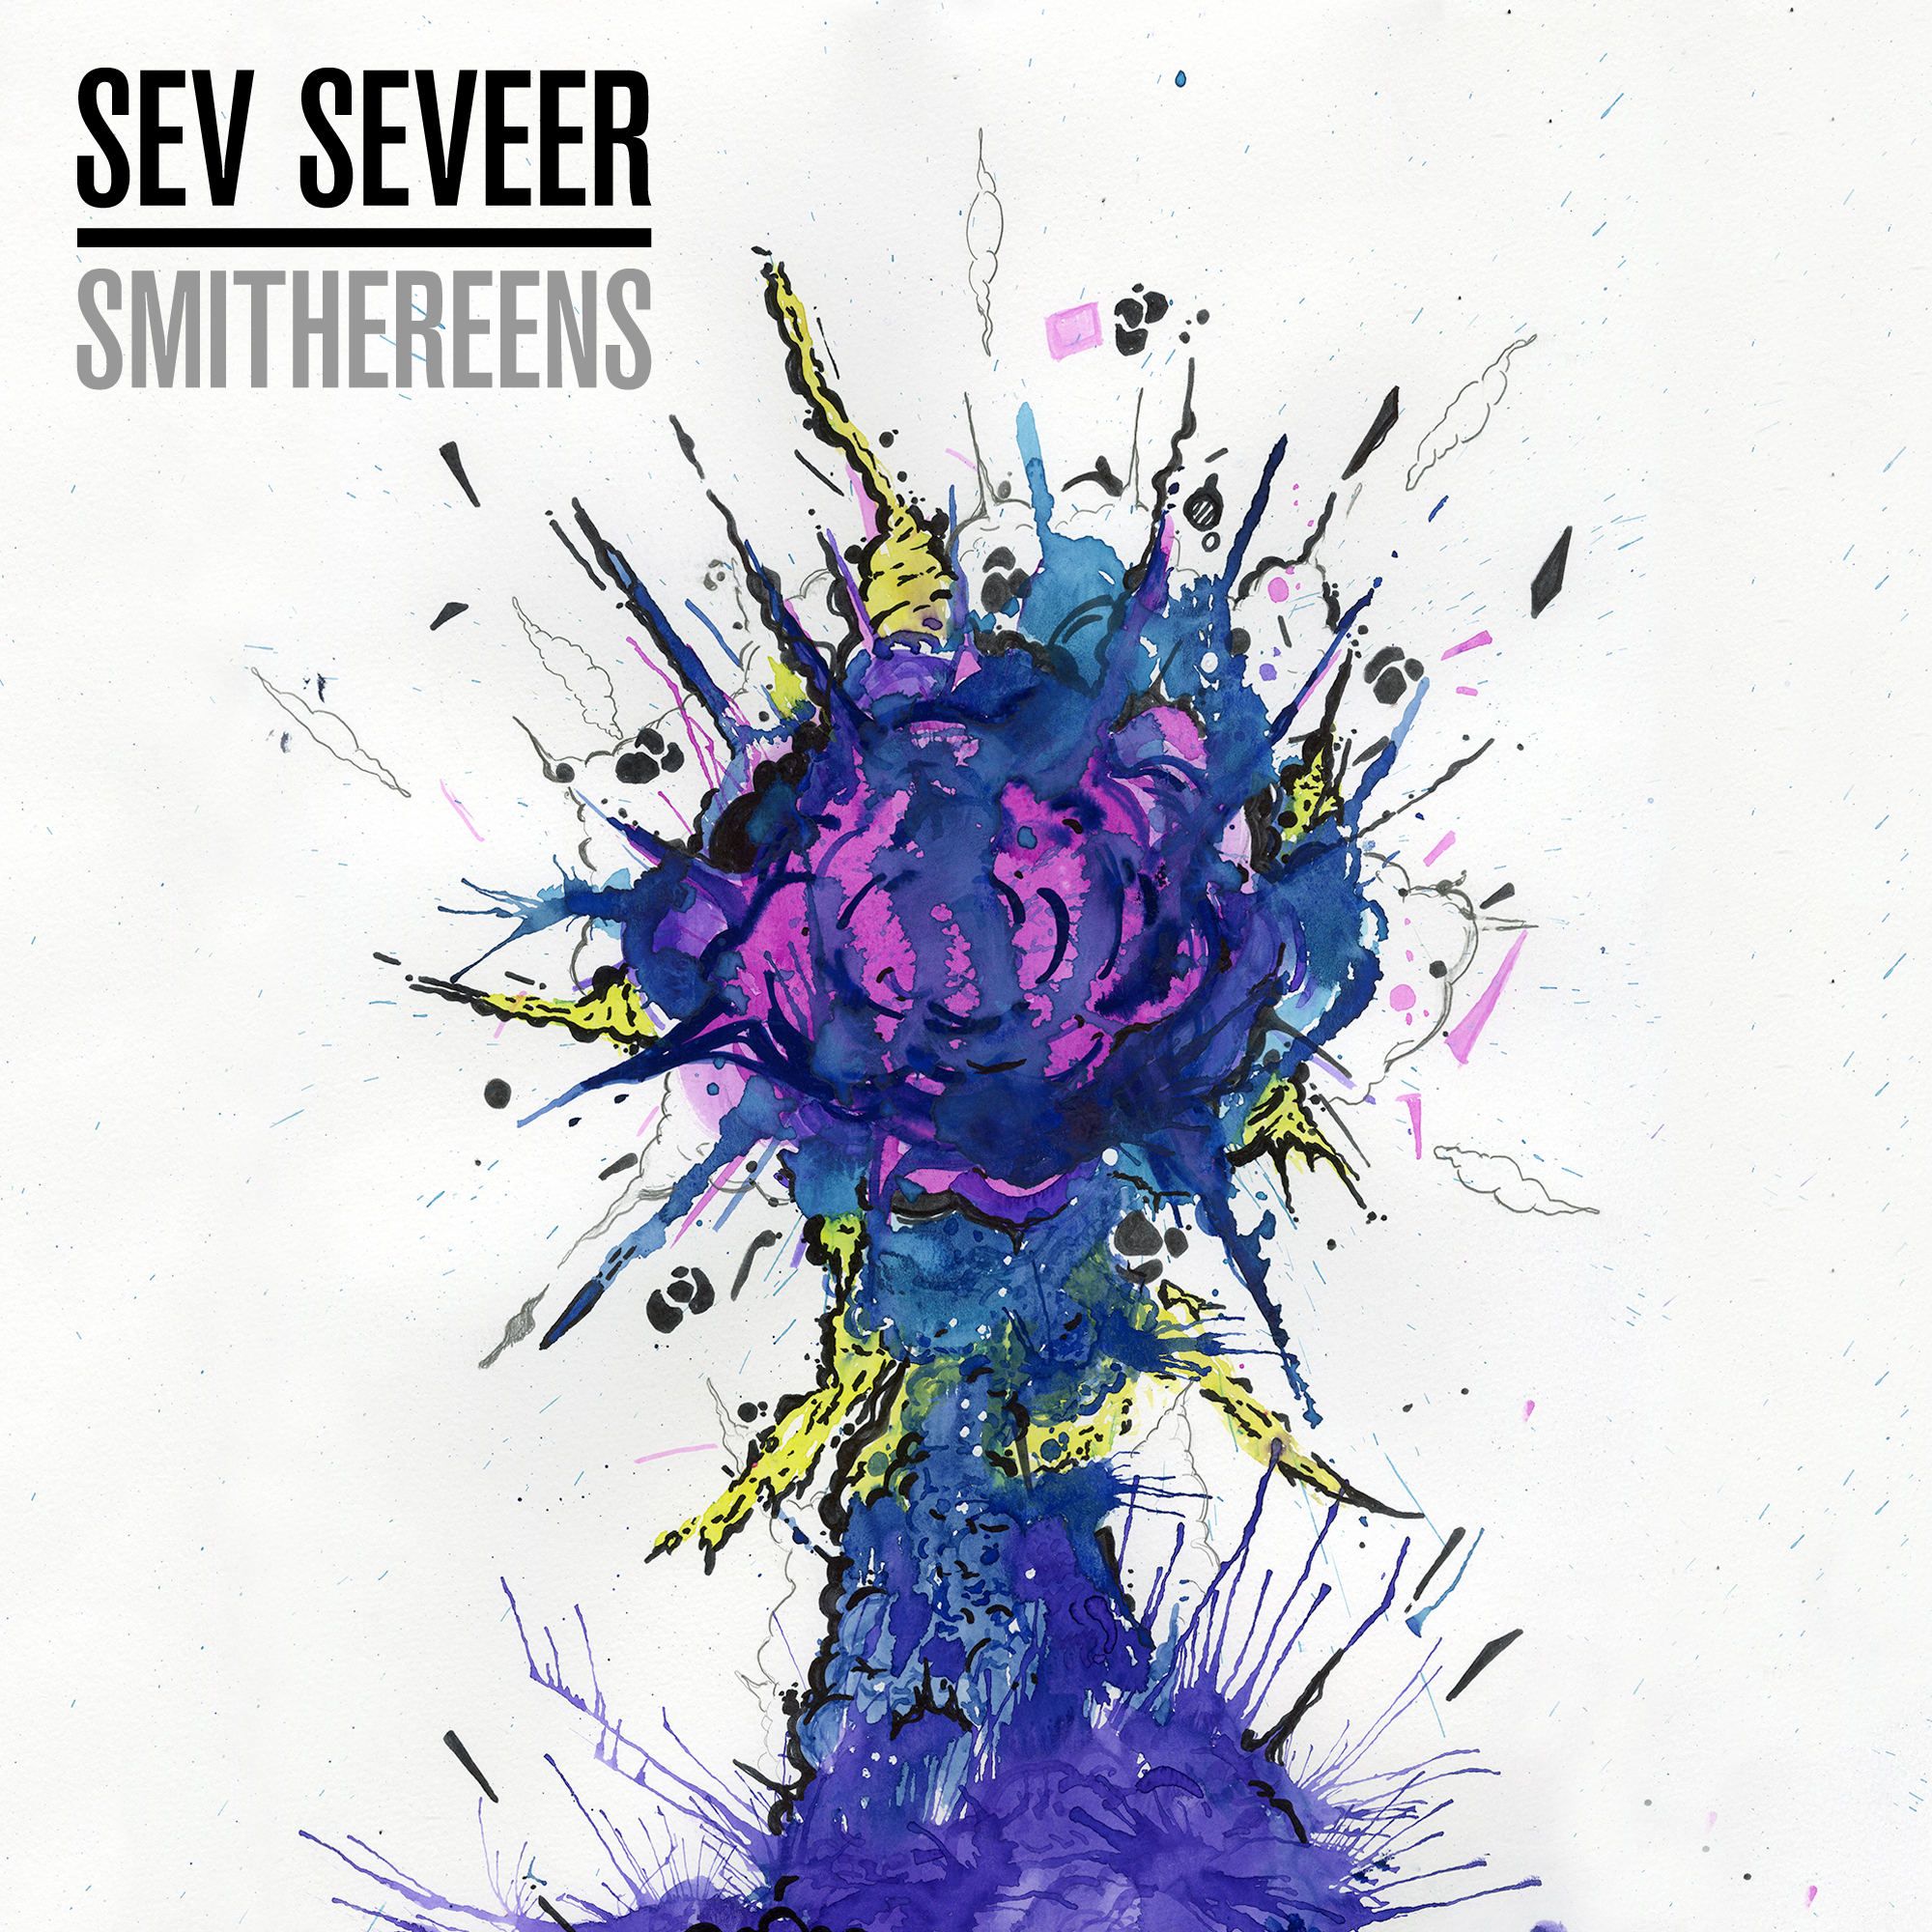 "SEV SEVEER - SMITHEREENS (BOAN-004)    VINYL & DIGITAL    Be among the very few to own Beats of All-Nations and Sev Seveer's first 12"" vinyl release!  An audio pointilism piece. Includes liner notes with photo and exclusive vinyl only bonus tracks. Cover art by Fonte. Vinyl available now while copies last."